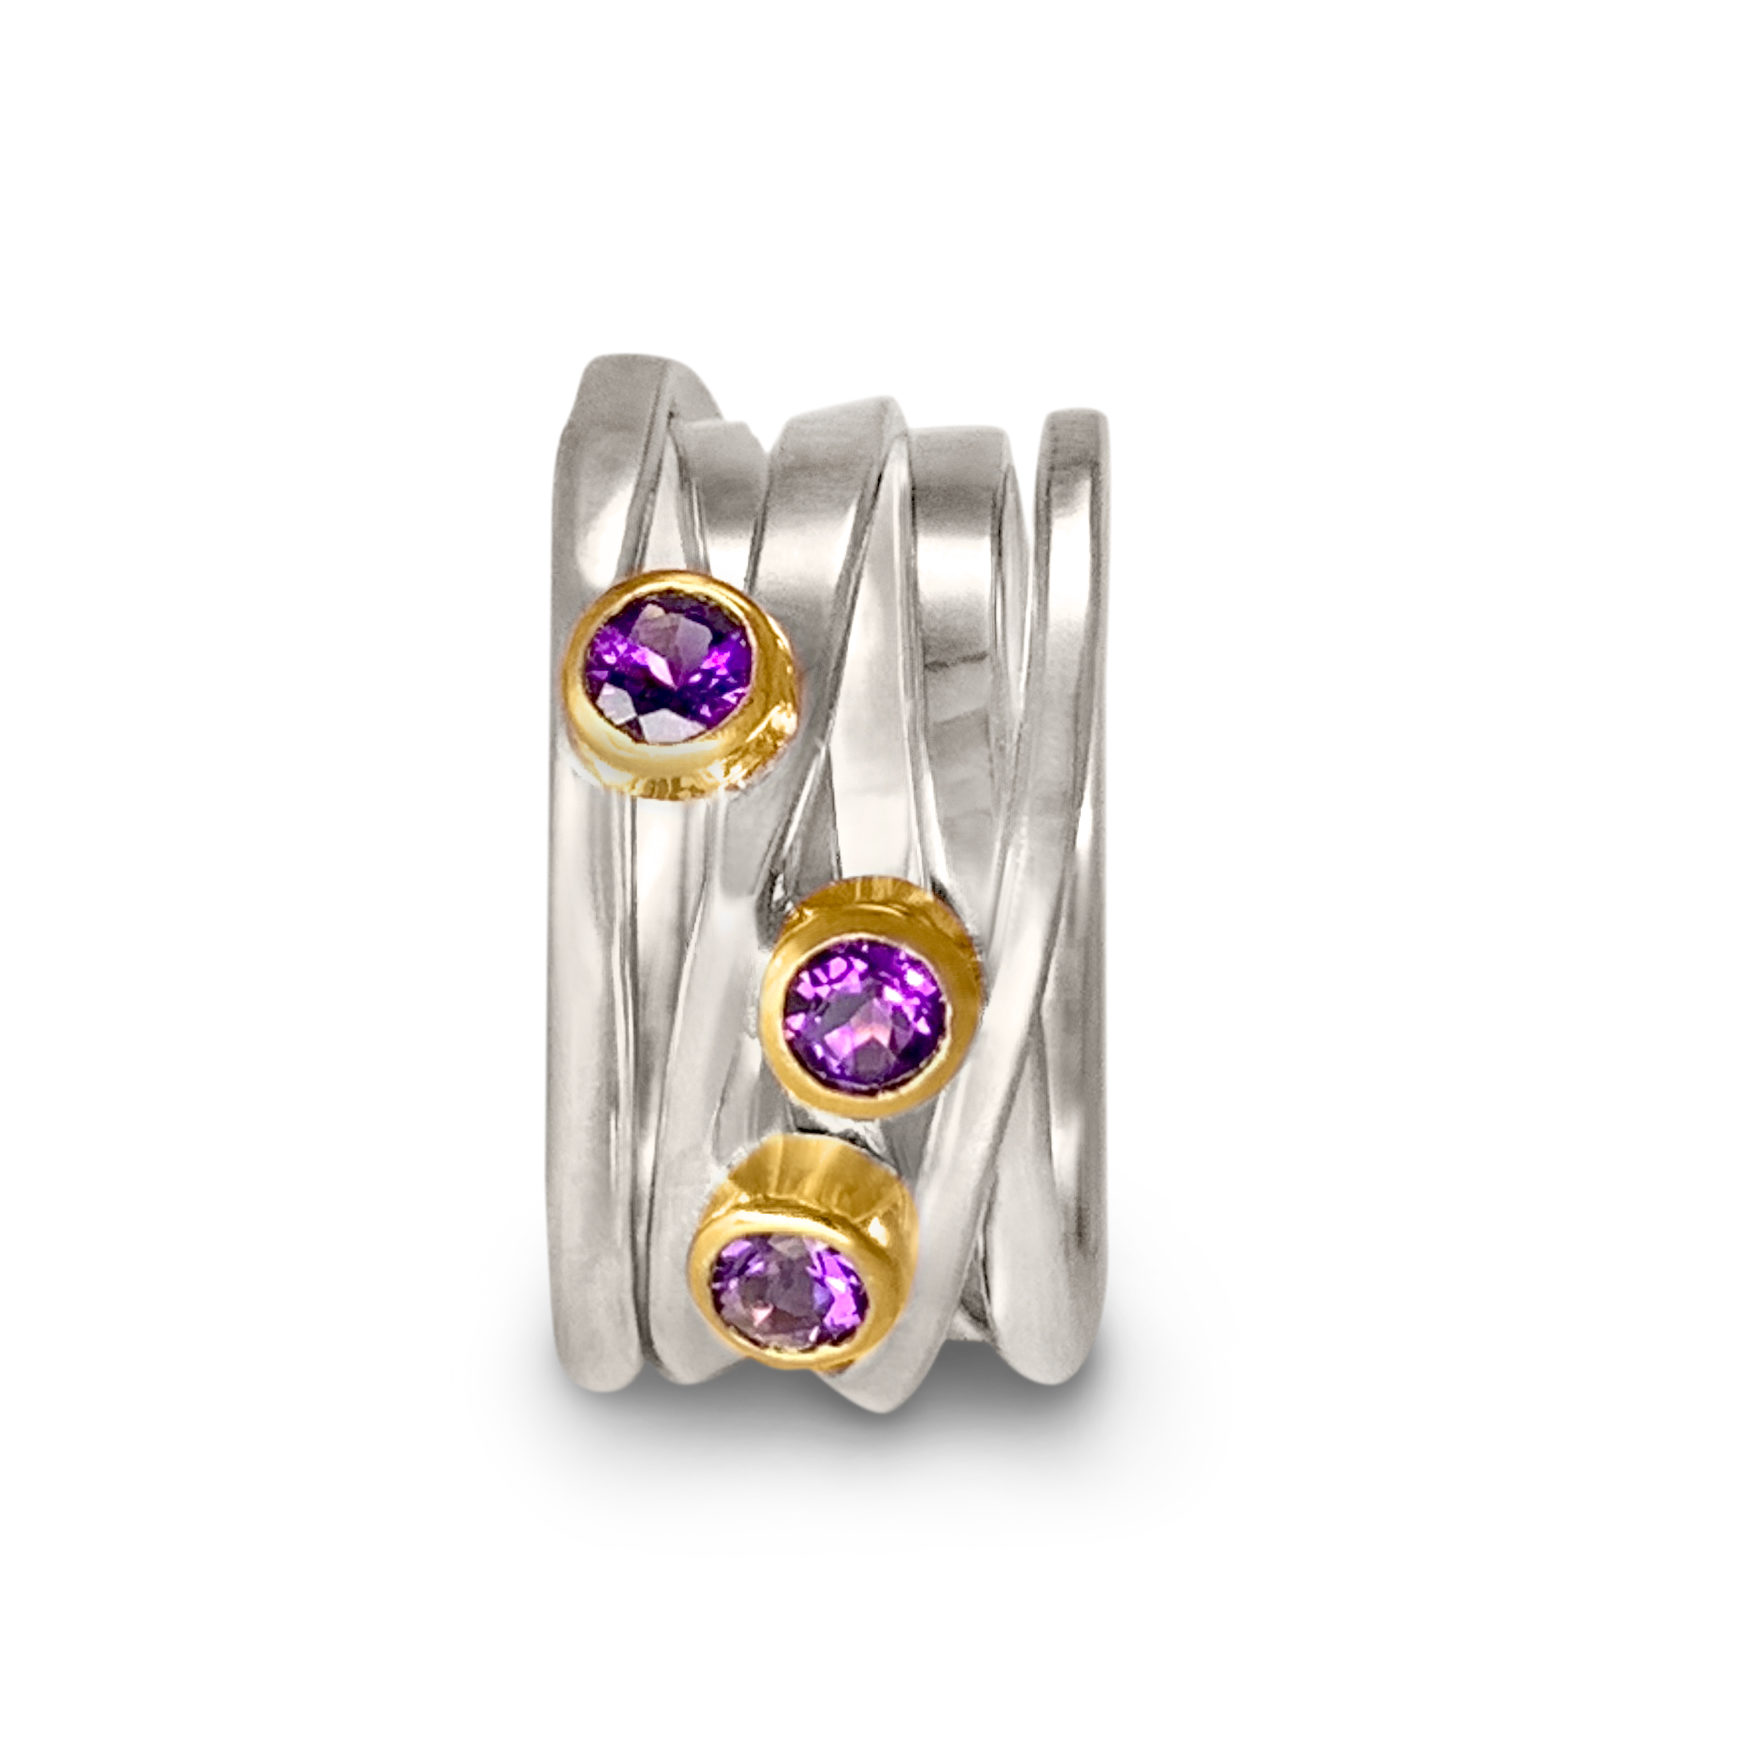 One-of-a-Kind #270 || Sterling Onefooter Ring with Amethyst in 18k yellow gold bezel setting, Size 8.5